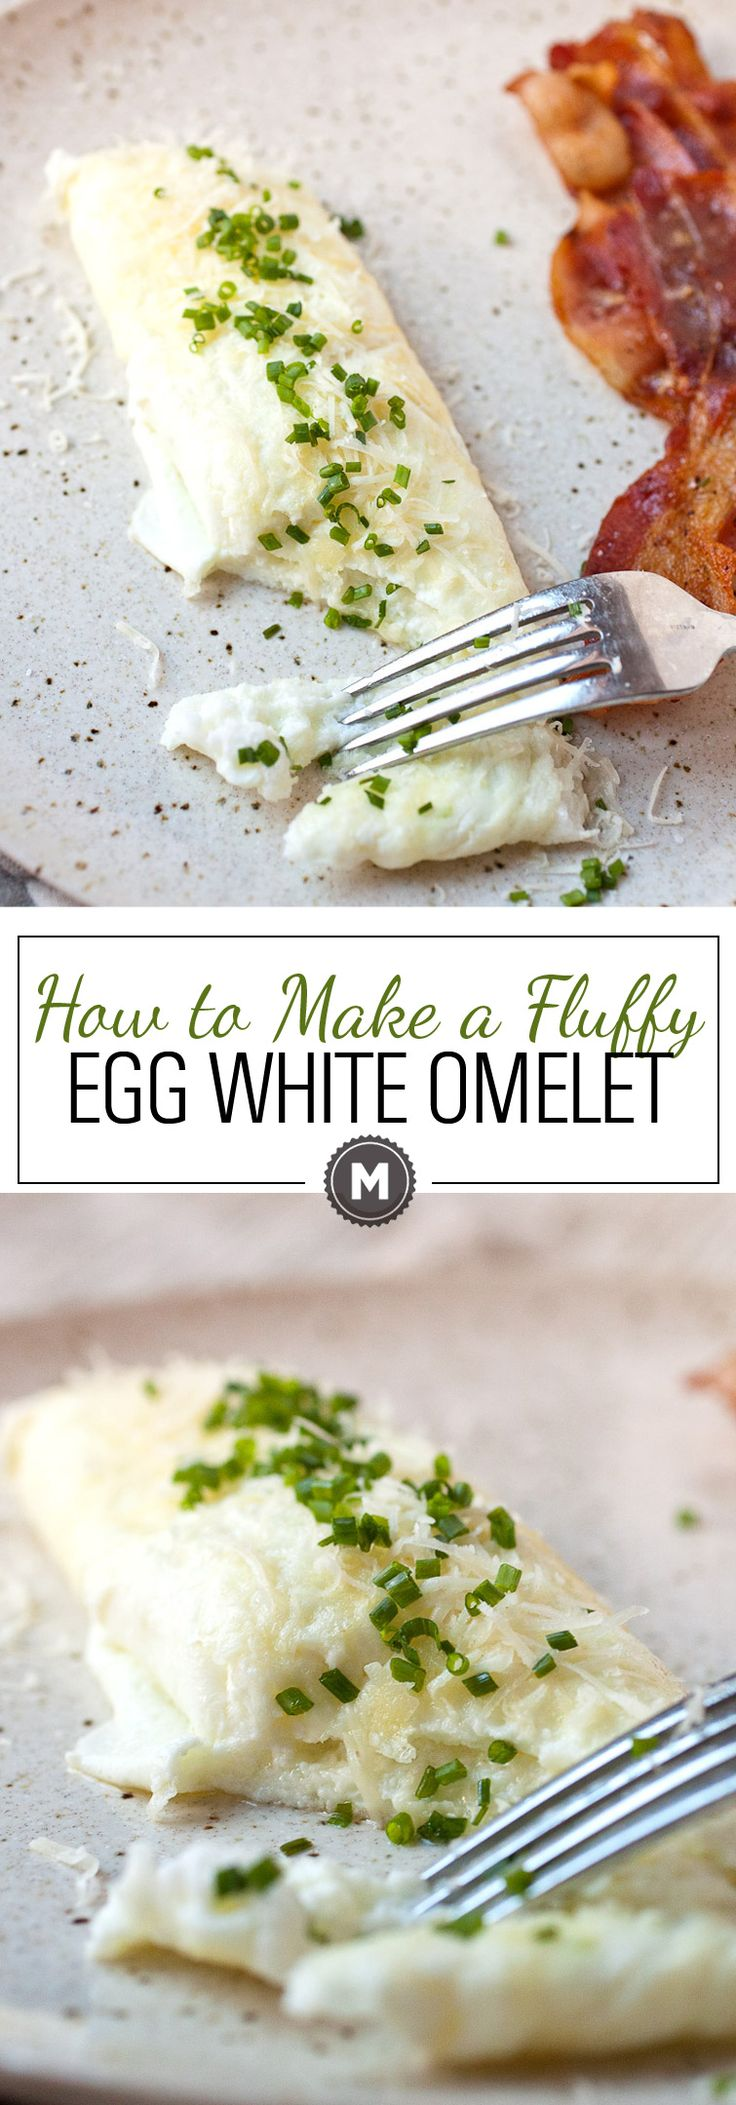 How to Make a Fluffy Egg White Omelet: Egg white omelets are a healthy and easy way to start the day! With a few little tricks, you can make a beautiful, fluffy omelet in minutes. Happy healthy breakfast! | macheesmo.com